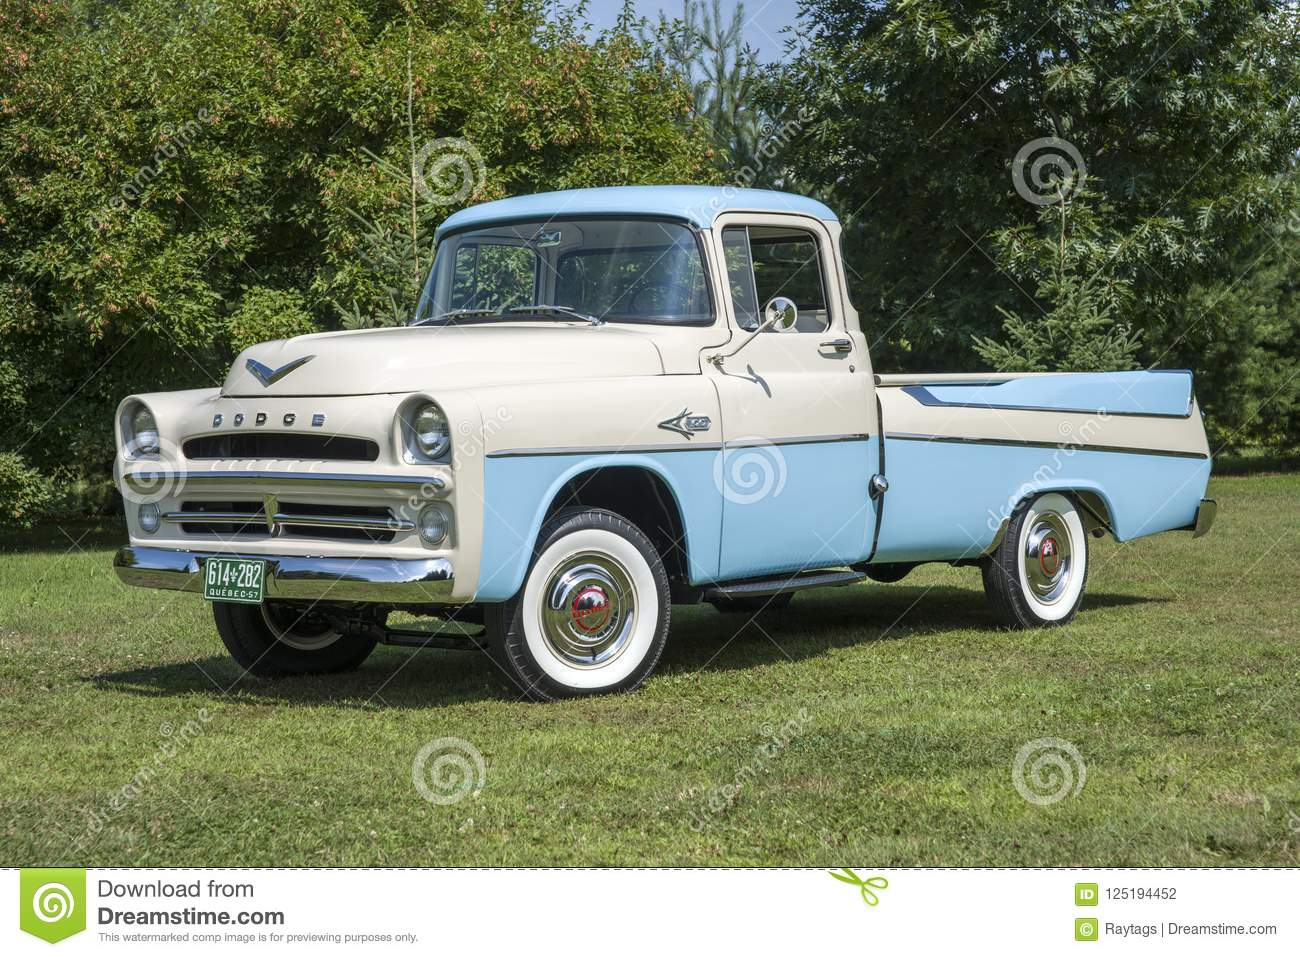 181 Classic Pickup Truck Side View Photos Free Royalty Free Stock Photos From Dreamstime